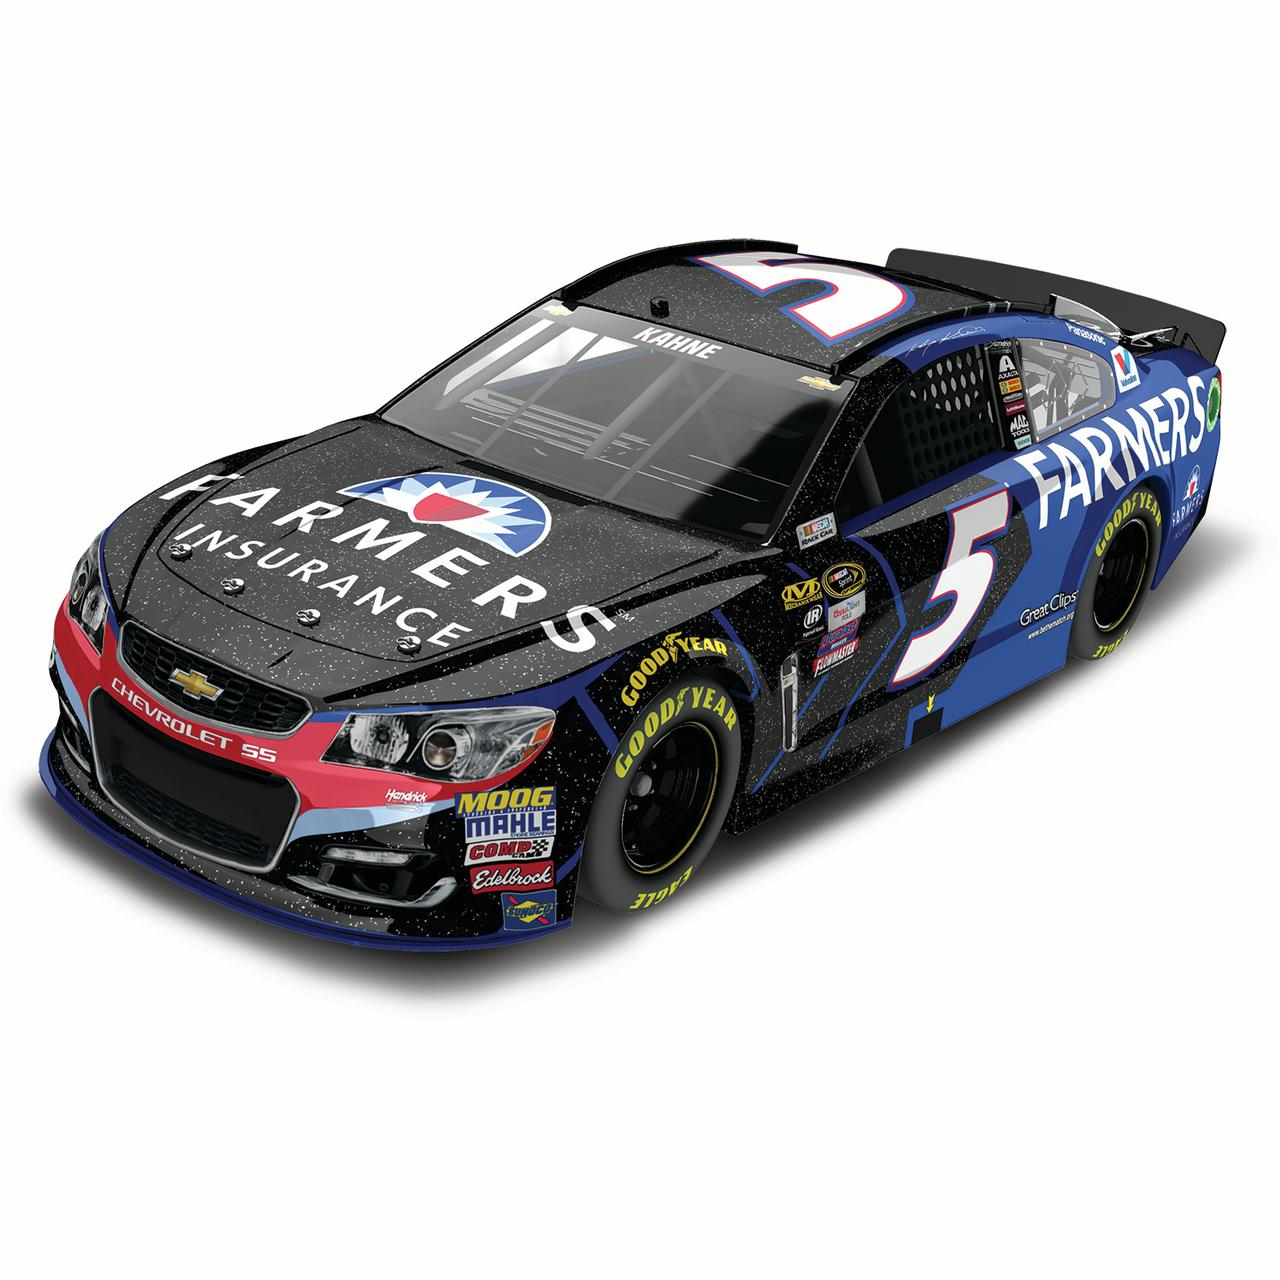 Kasey Kahne Action Racing 2016 #5 Farmer's Insurance 1:24 Nascar Sprint Cup Series Galaxy... by Lionel LLC